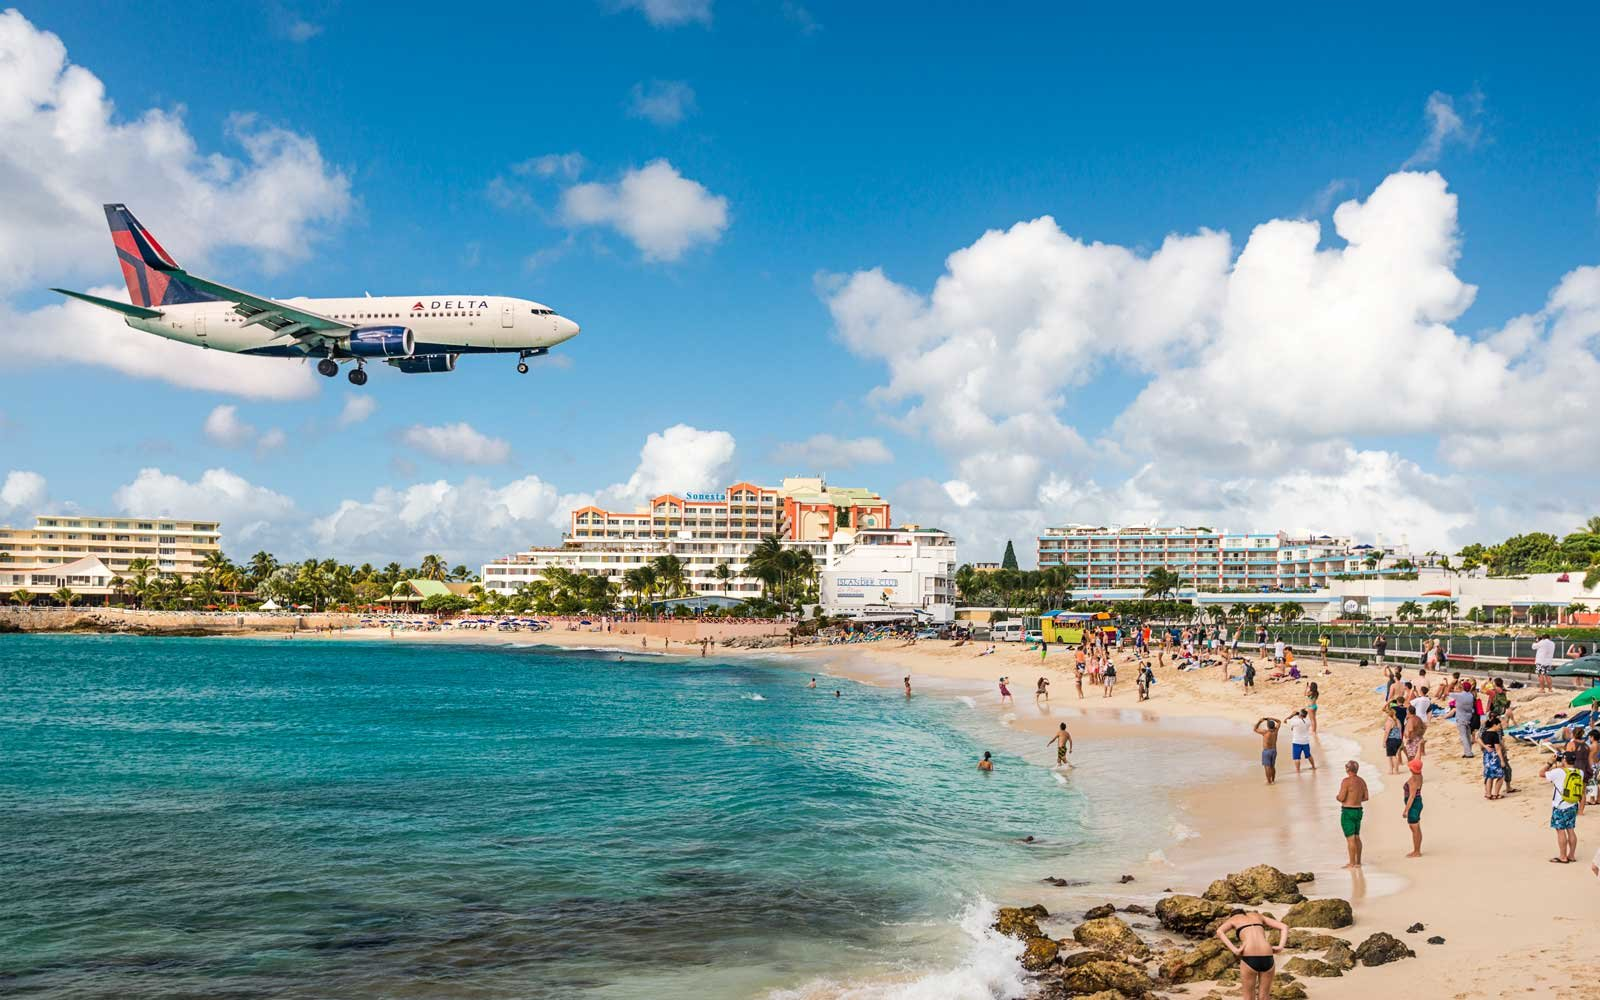 A jet approaches Princess Juliana Airport above onlookers on Maho Beach.